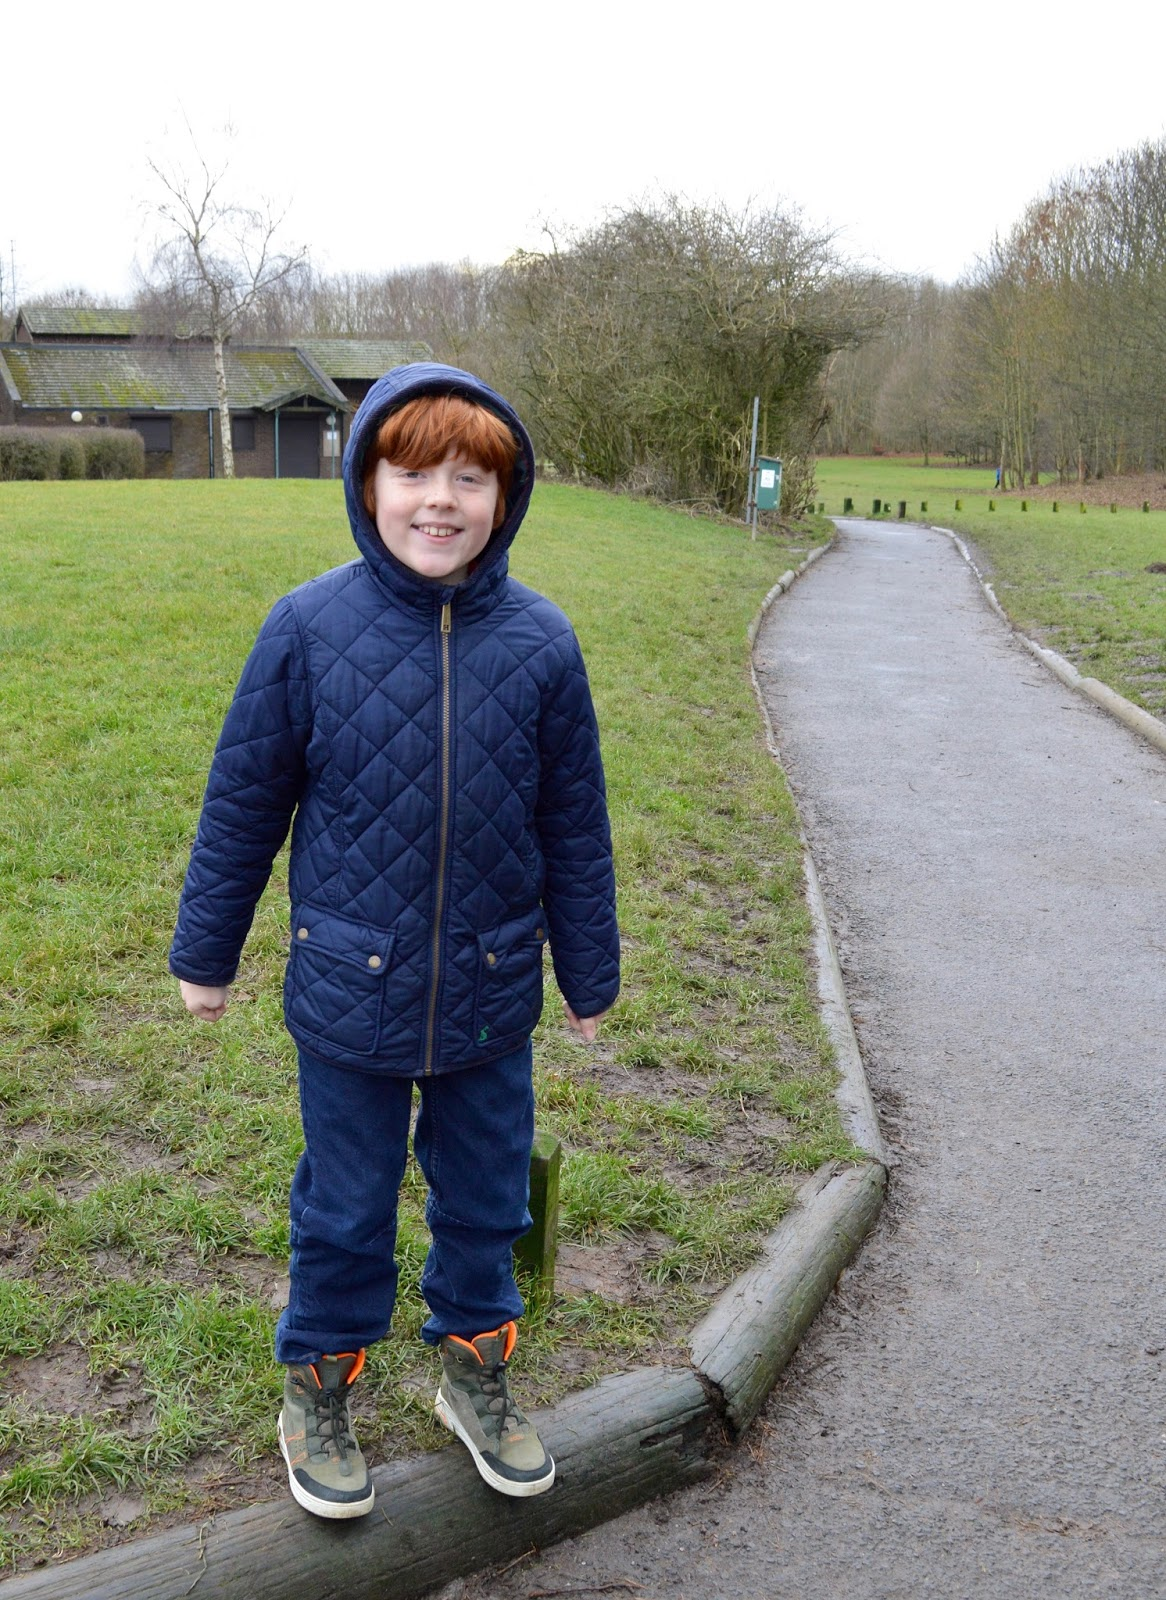 Our Visit to Plessey Woods - A FREE day out in Northumberland. It was very muddy and the perfect chance for Harry to put his GORE-TEX shoes through their paces - Visitor Centre